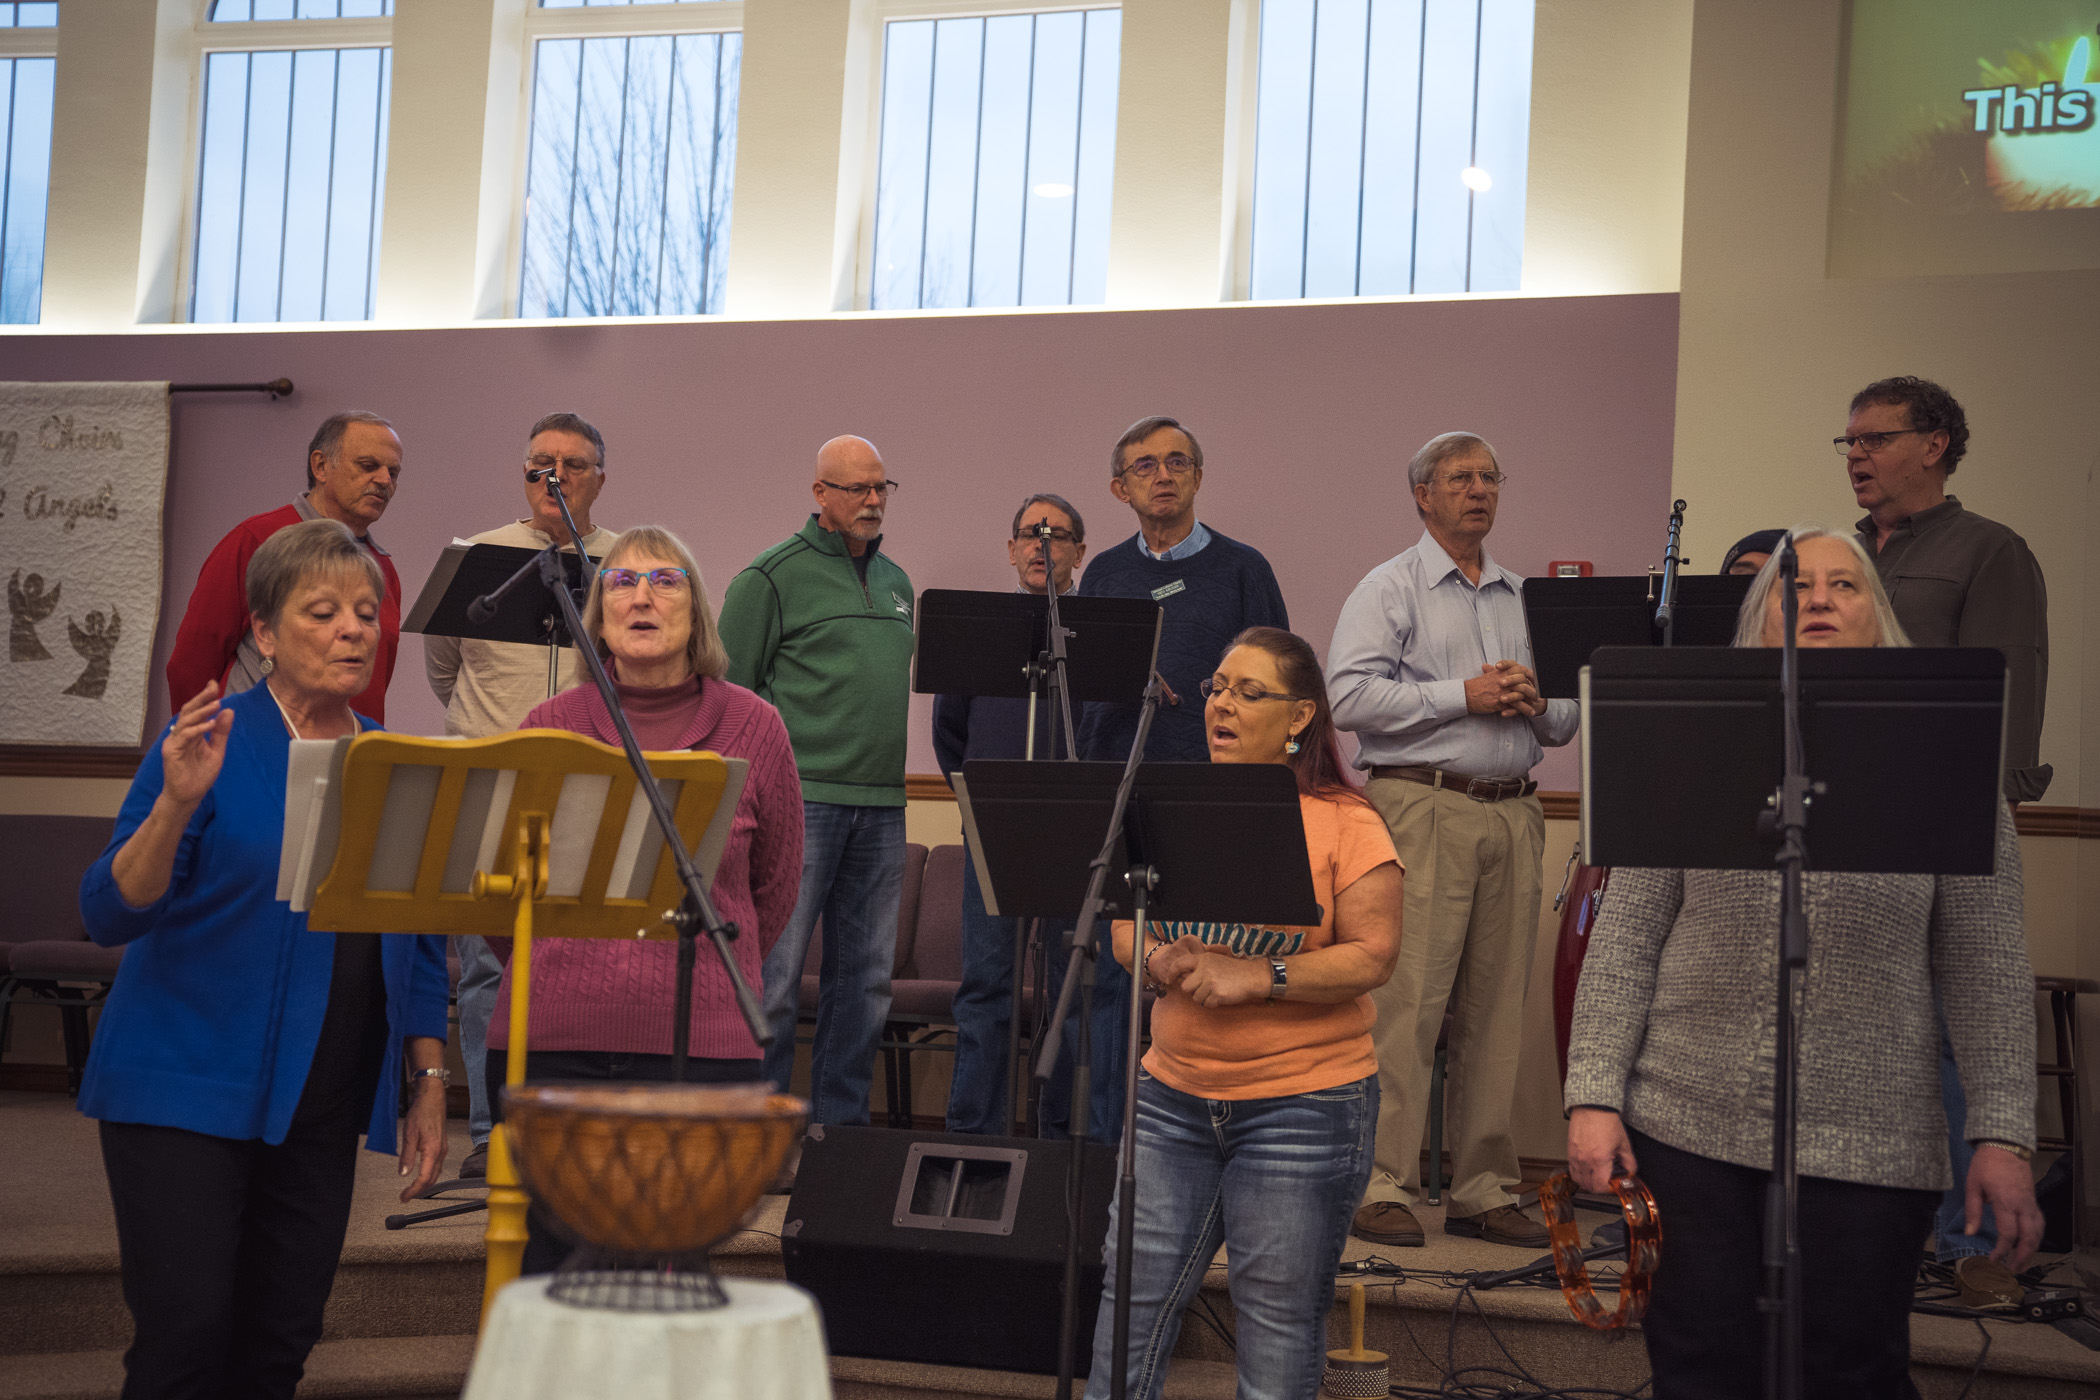 The worship team practices at Immanuel Lutheran Church in Centralia, WA